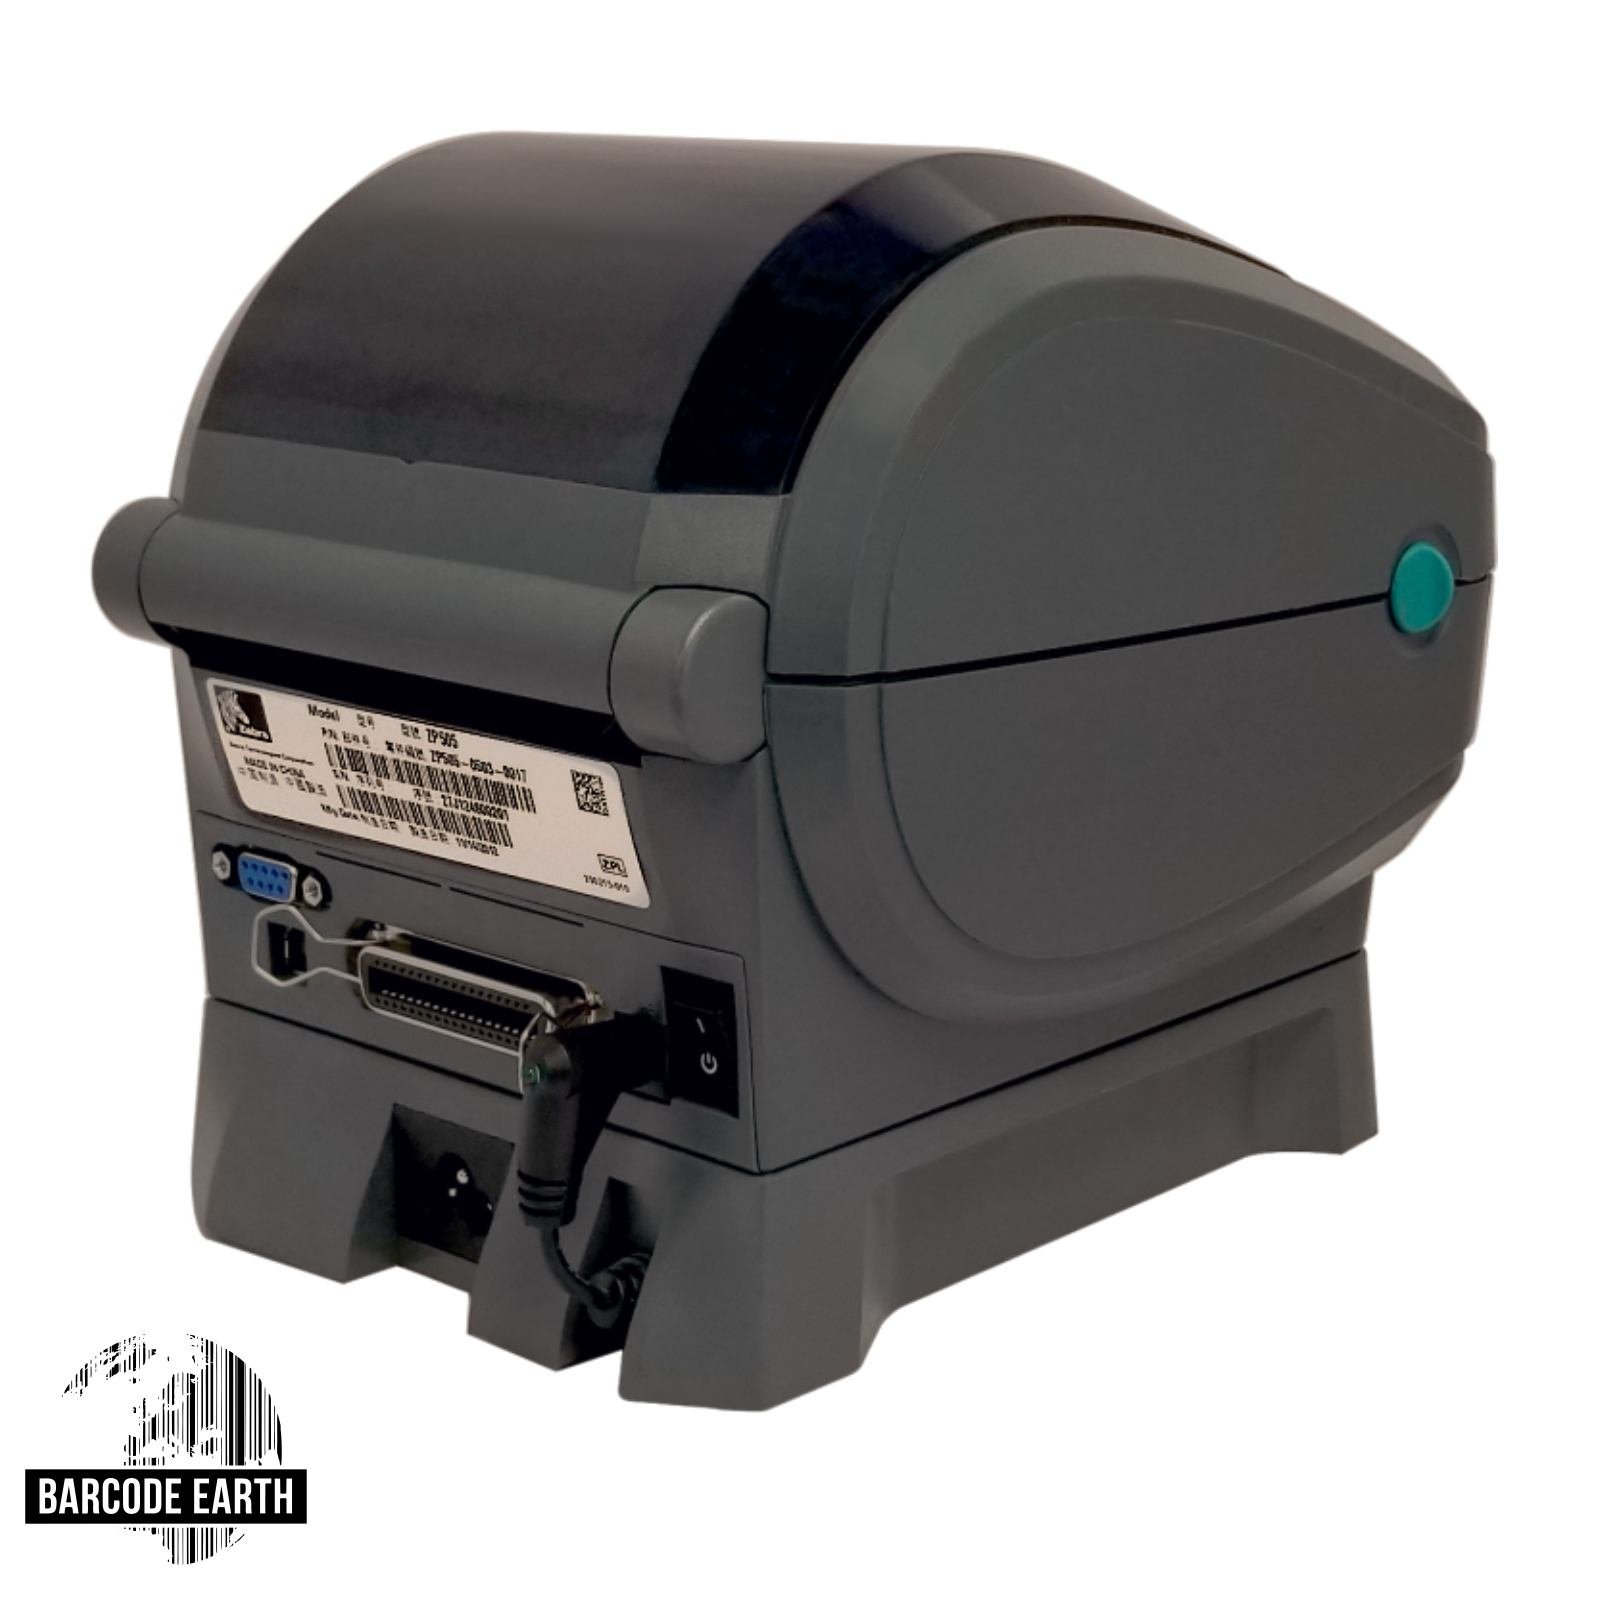 Zebra ZP450 Thermal Label Barcode Printer $124 99 w/ Tech Support, Labels,  and More!